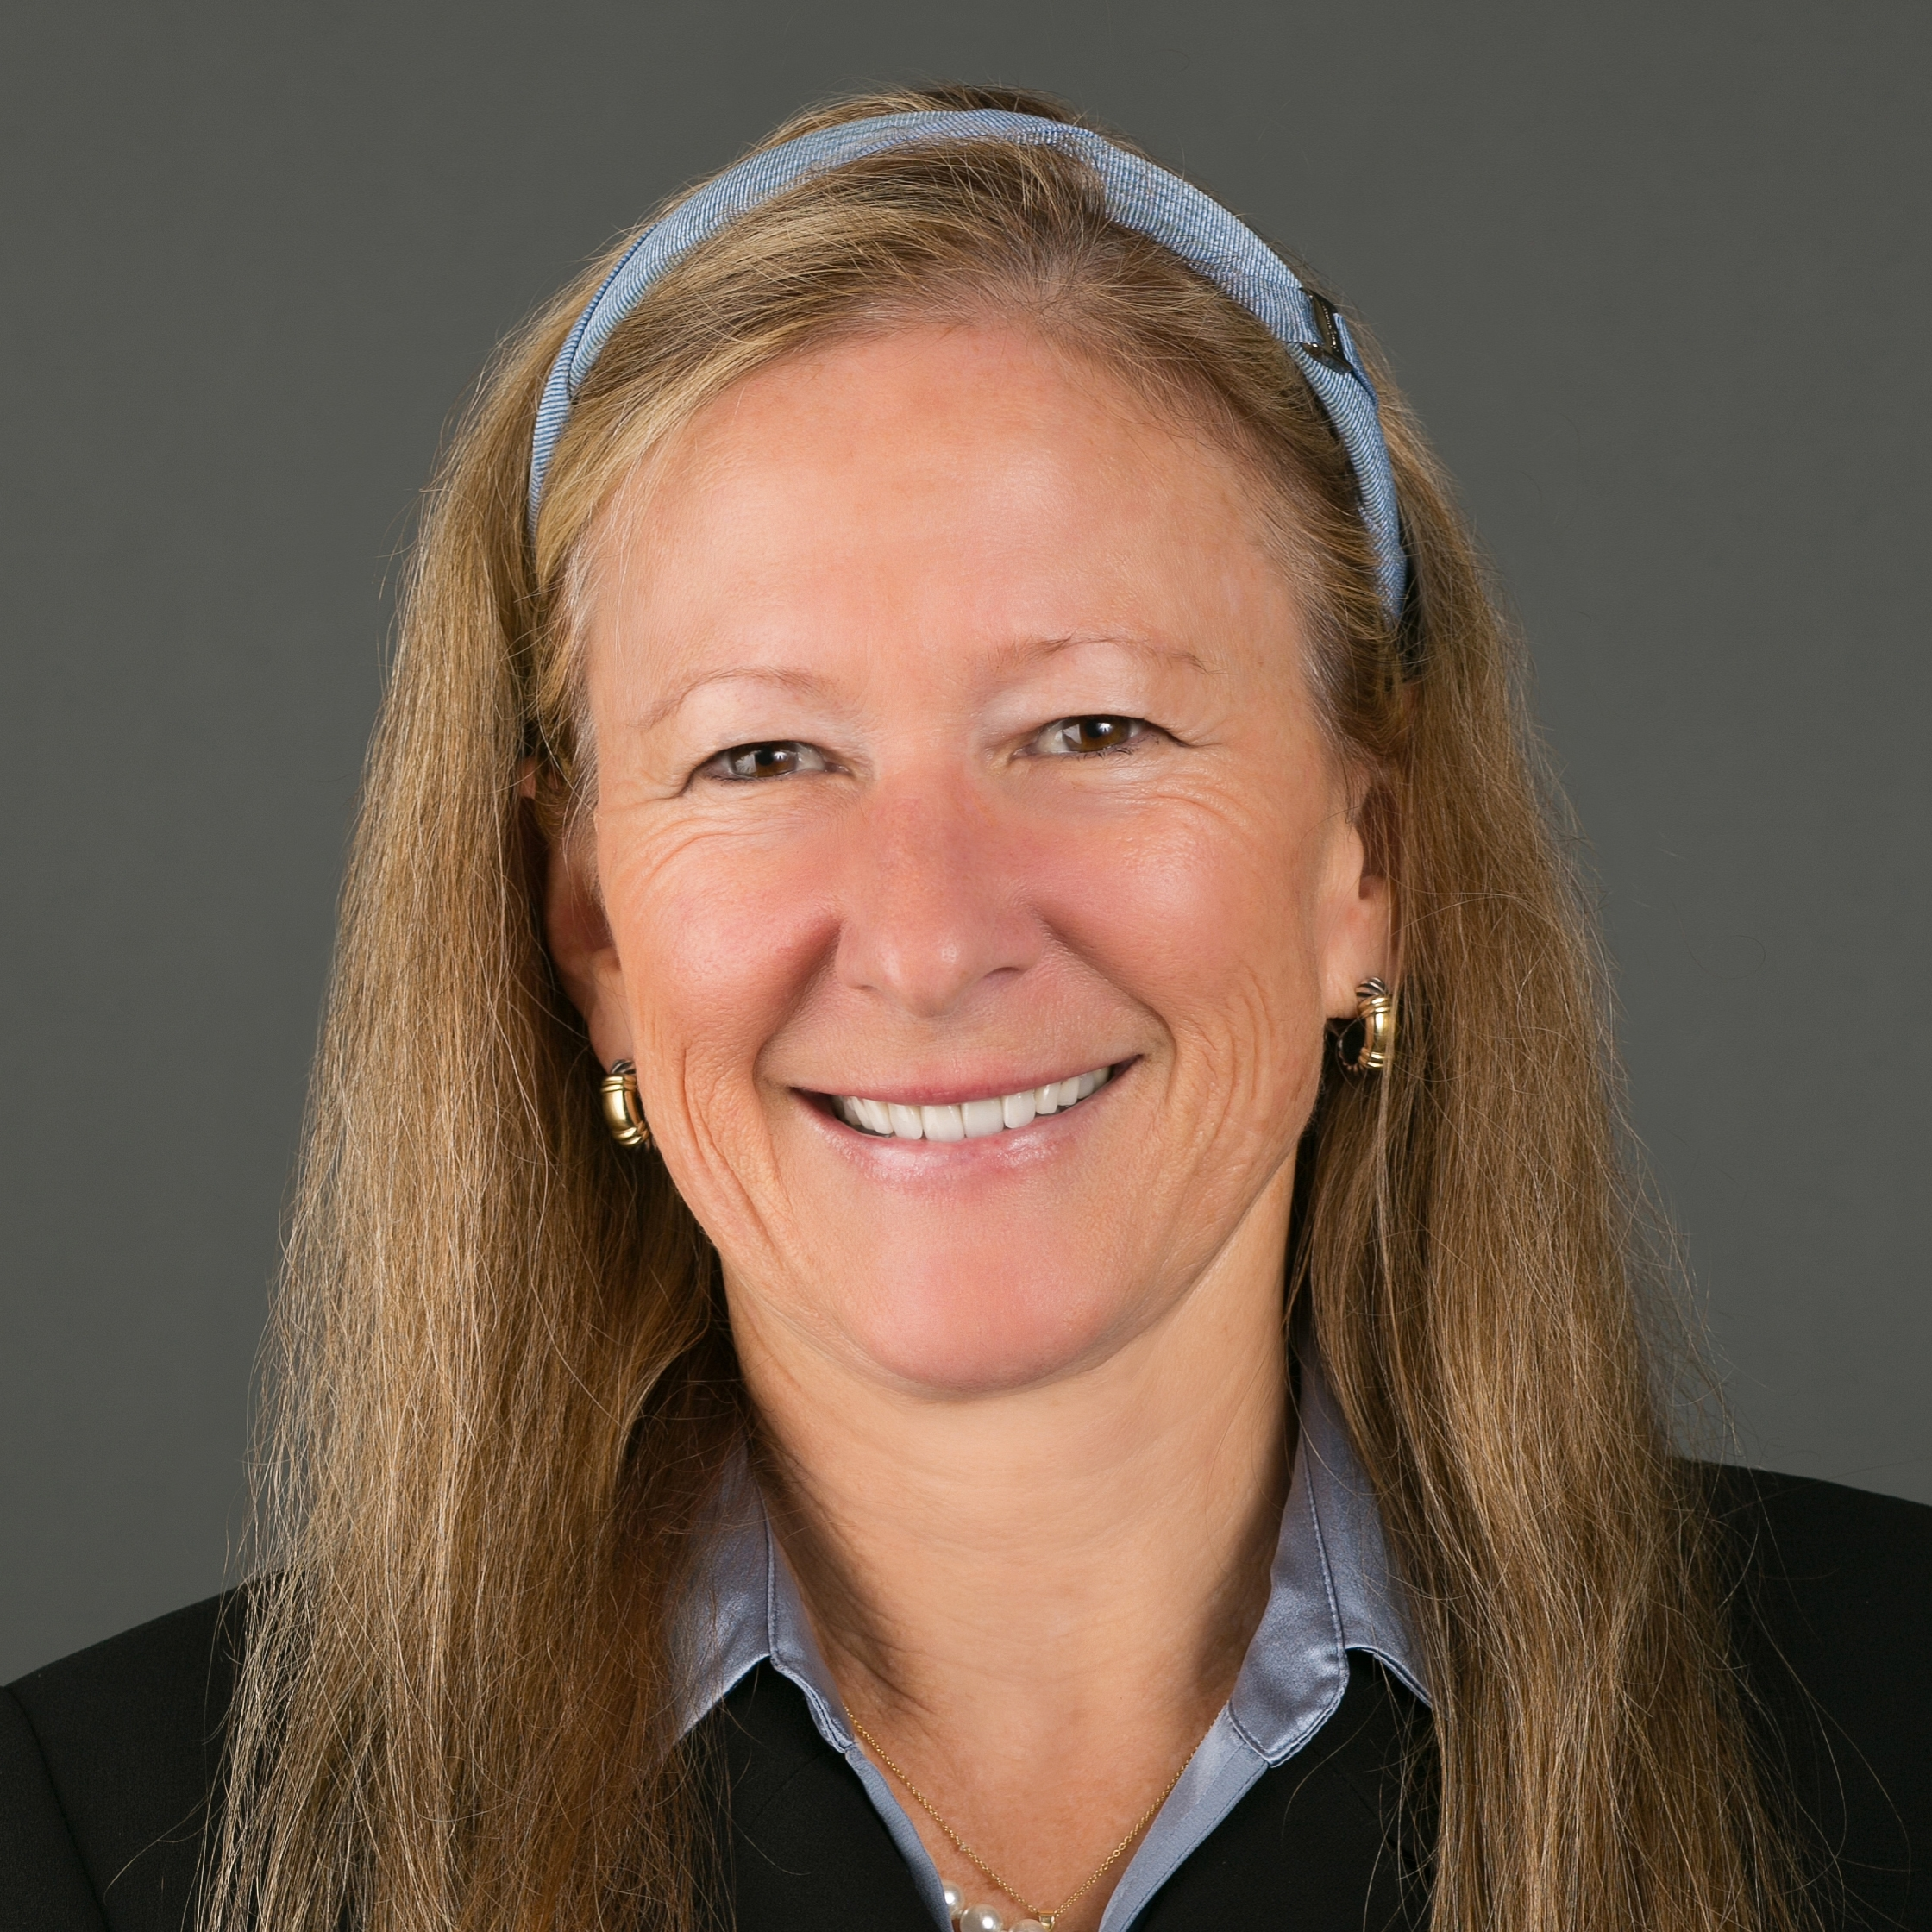 Julie C. Bryan, MBA, CFA - Chief Investment Officer